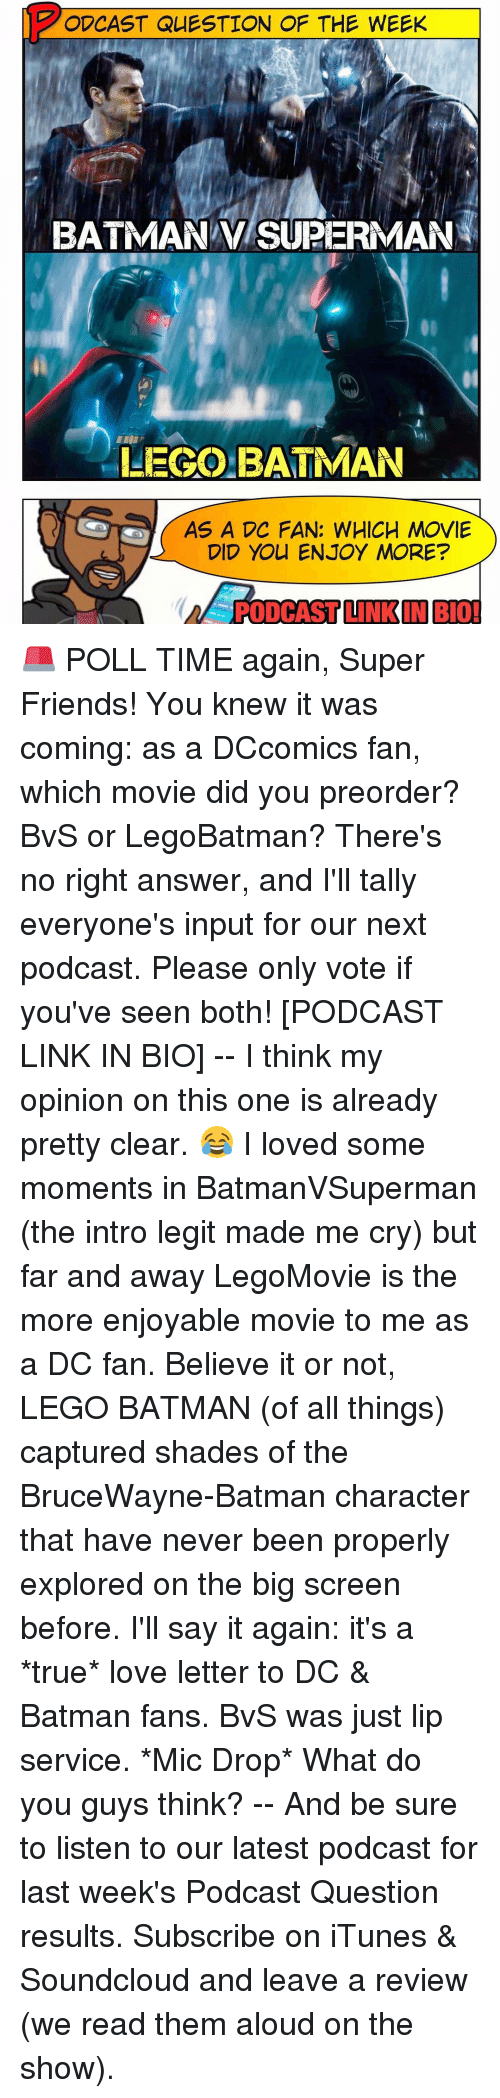 Memes, Love Letter, and 🤖: PODCAST QUESTION OF THE WEEK  BATMAN SUPERMAN  LEGO BATMAN  AS A DC FAN: WHICH MOVIE  DID YOU ENJOY MORE?  PODCAST INK IN BIO! 🚨 POLL TIME again, Super Friends! You knew it was coming: as a DCcomics fan, which movie did you preorder? BvS or LegoBatman? There's no right answer, and I'll tally everyone's input for our next podcast. Please only vote if you've seen both! [PODCAST LINK IN BIO] -- I think my opinion on this one is already pretty clear. 😂 I loved some moments in BatmanVSuperman (the intro legit made me cry) but far and away LegoMovie is the more enjoyable movie to me as a DC fan. Believe it or not, LEGO BATMAN (of all things) captured shades of the BruceWayne-Batman character that have never been properly explored on the big screen before. I'll say it again: it's a *true* love letter to DC & Batman fans. BvS was just lip service. *Mic Drop* What do you guys think? -- And be sure to listen to our latest podcast for last week's Podcast Question results. Subscribe on iTunes & Soundcloud and leave a review (we read them aloud on the show).